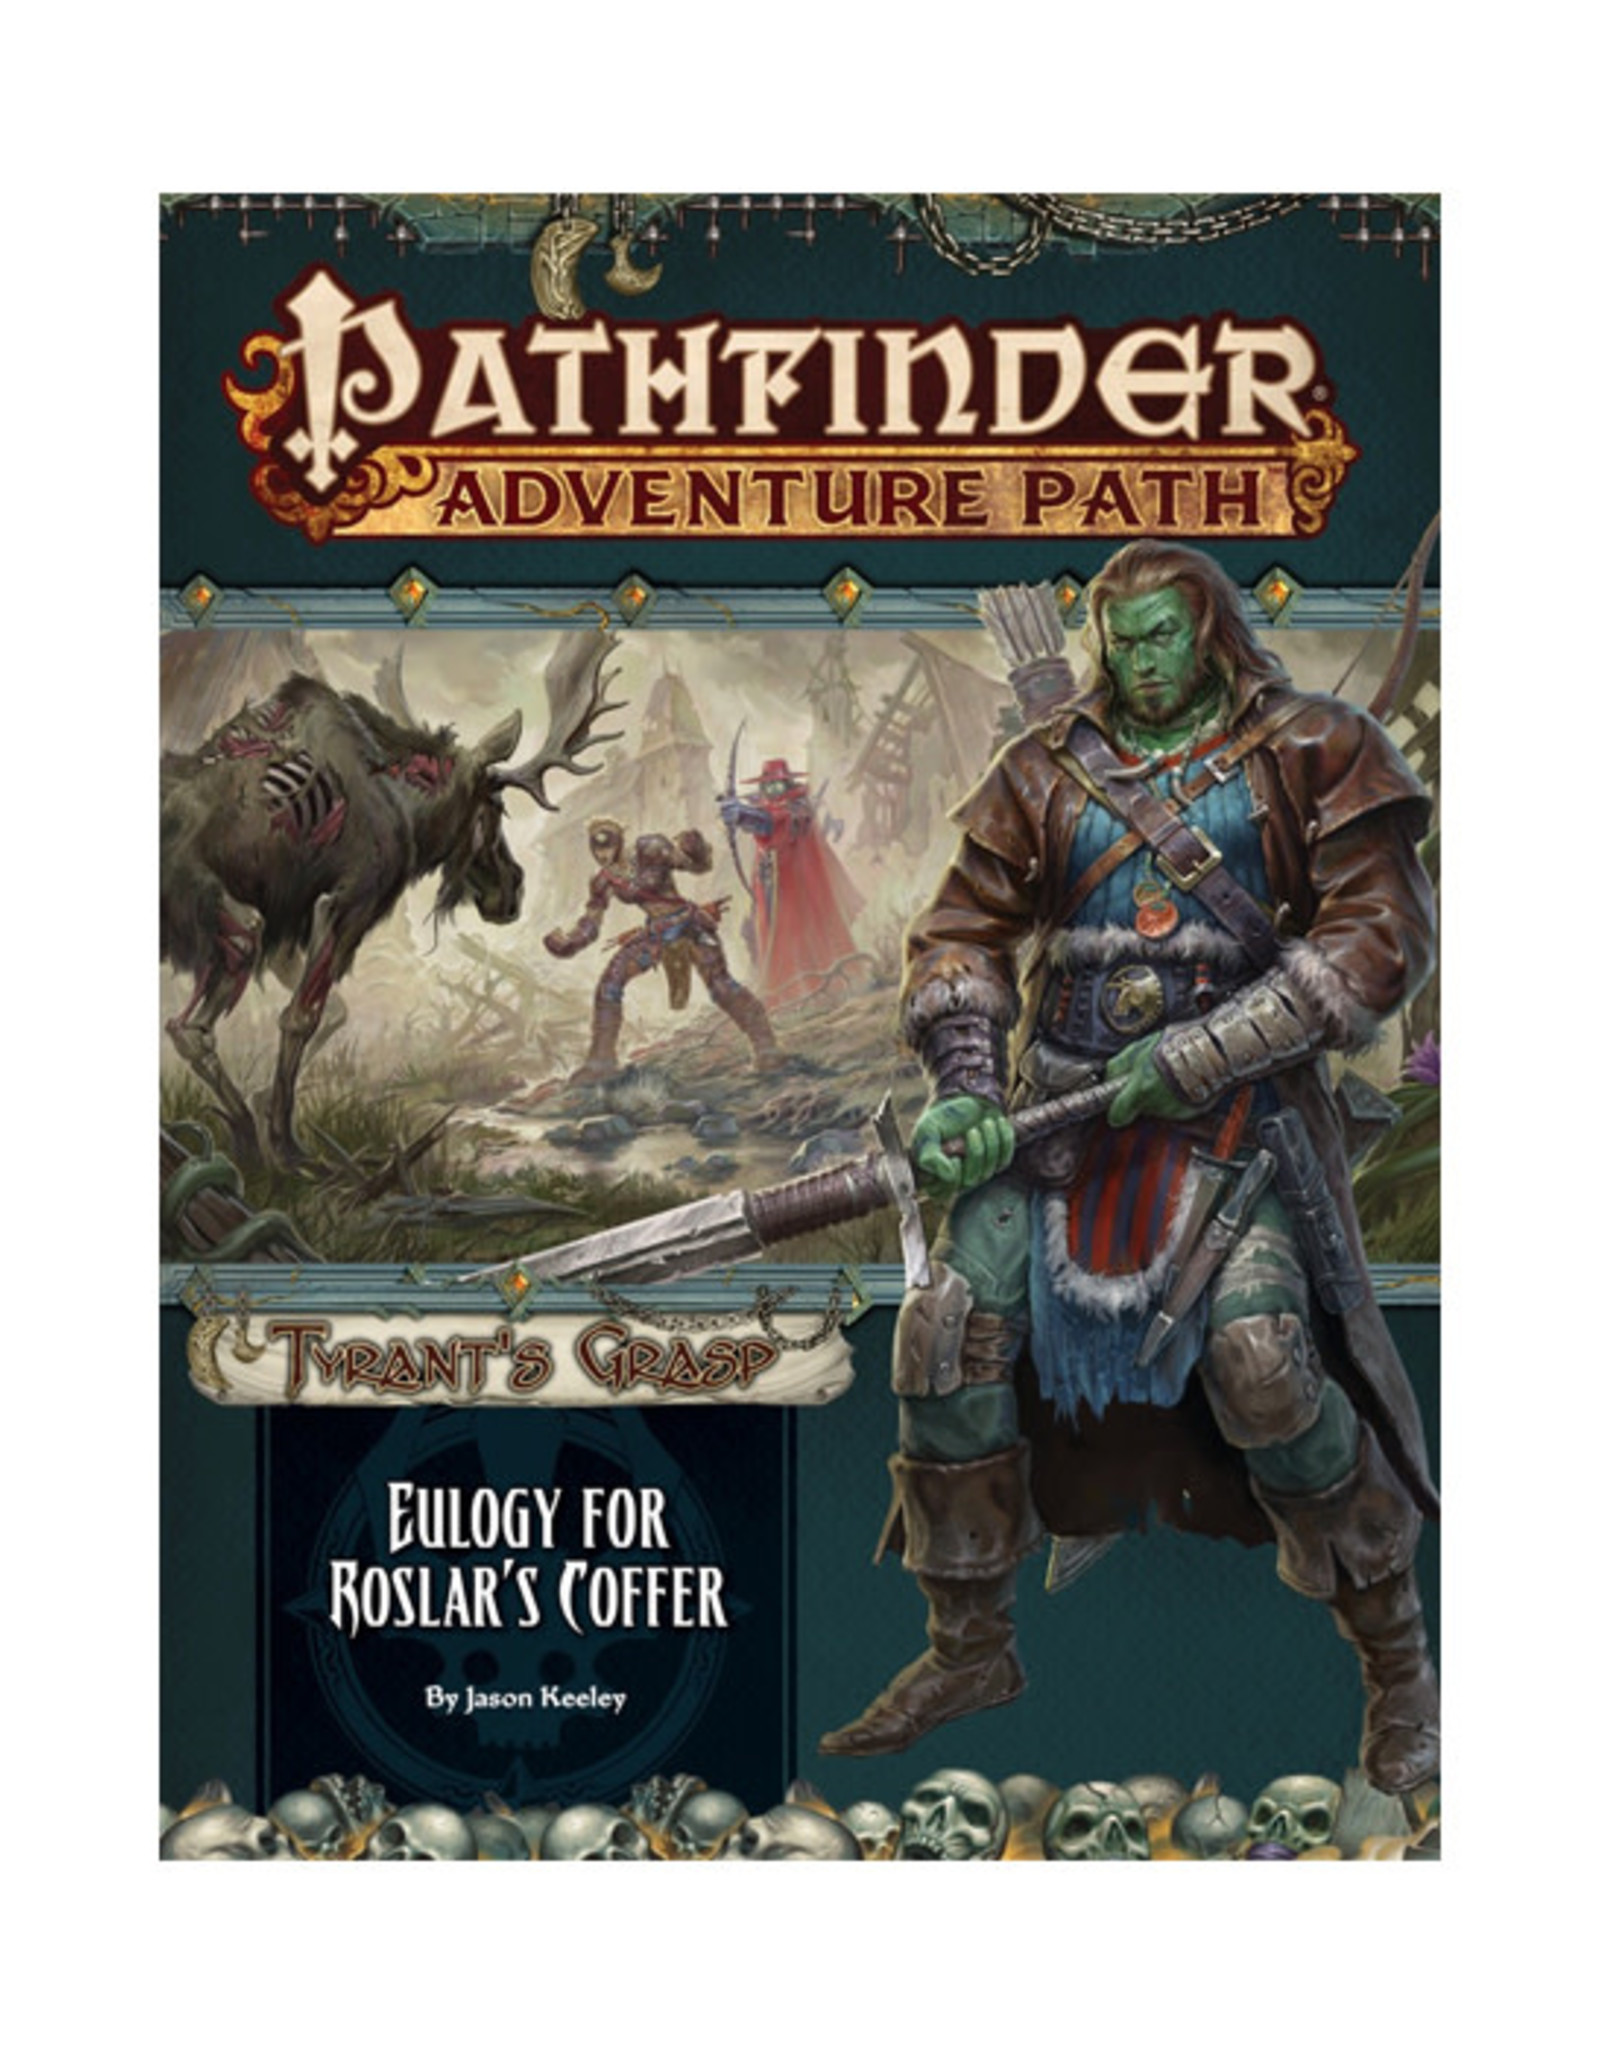 Pathfinder Pathfinder: Adventure Path - Tyrant's Grasp - Eulogy for Roslar's Coffer